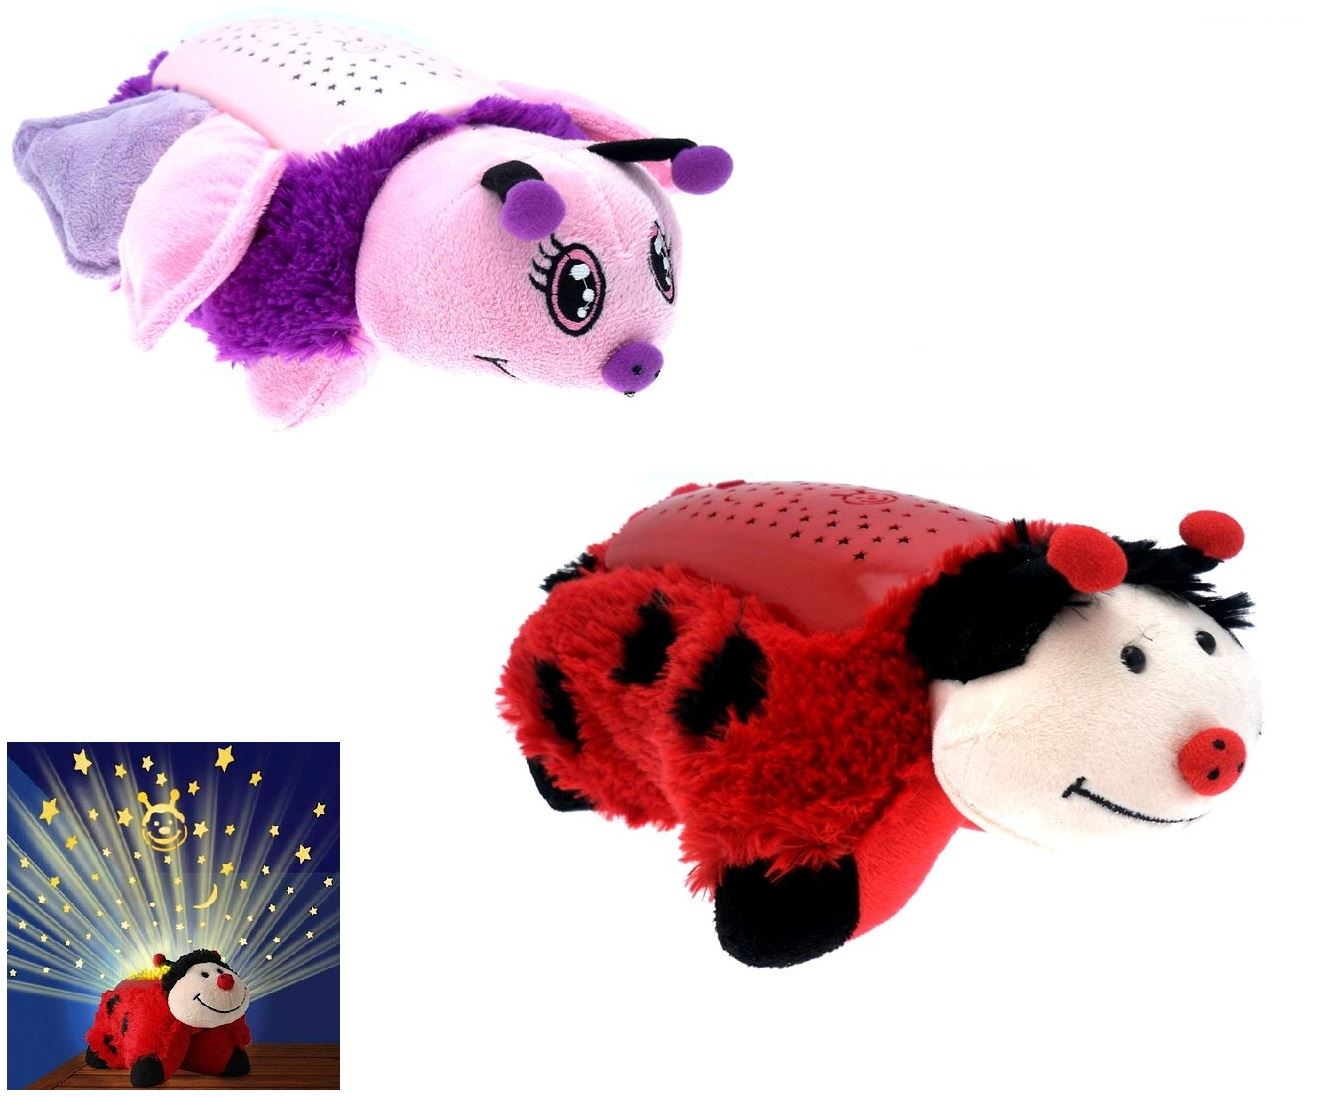 Animal Pillow That Lights Up : ANIMAL PILLOW PETS DREAM WITH NIGHT LIGHT KIDS TOY LITES PLUSH CUDDLY CUSHION eBay